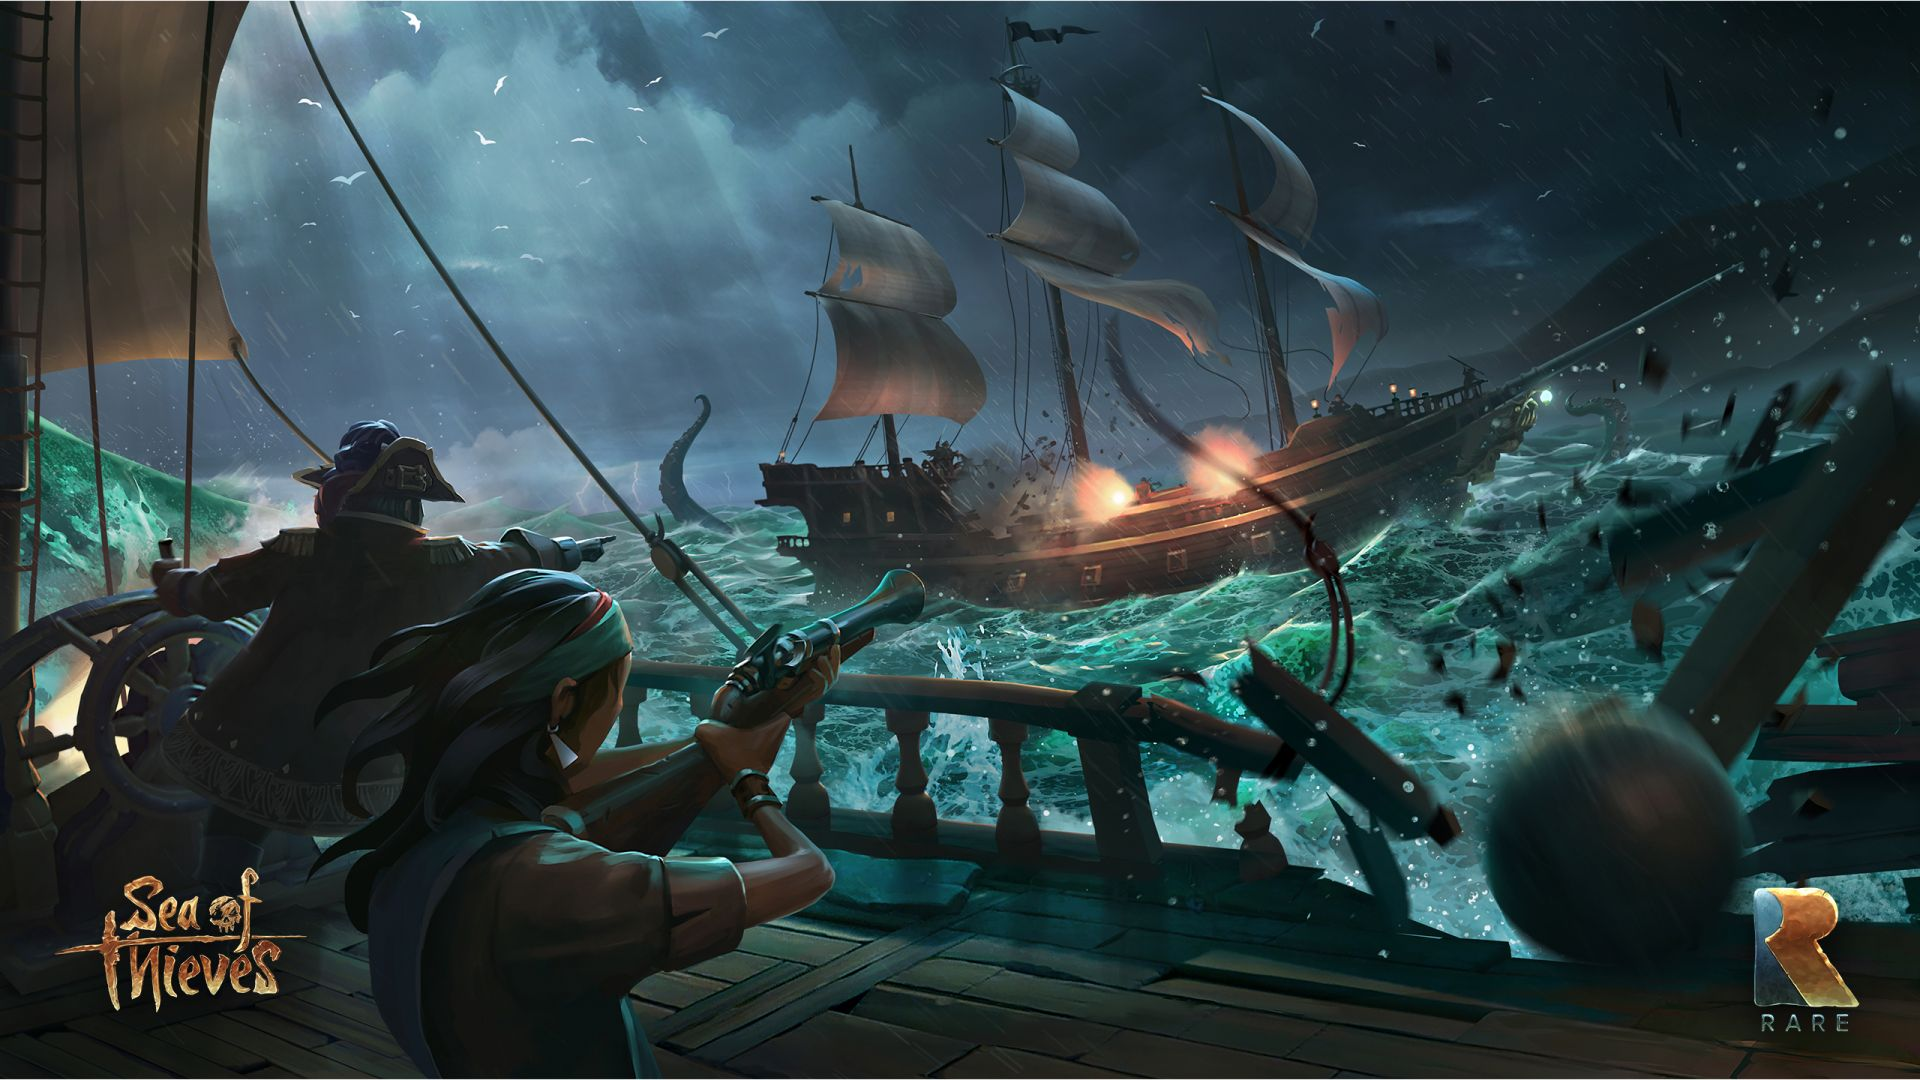 Wallpaper Sea of thieves, ship, fight, pirates